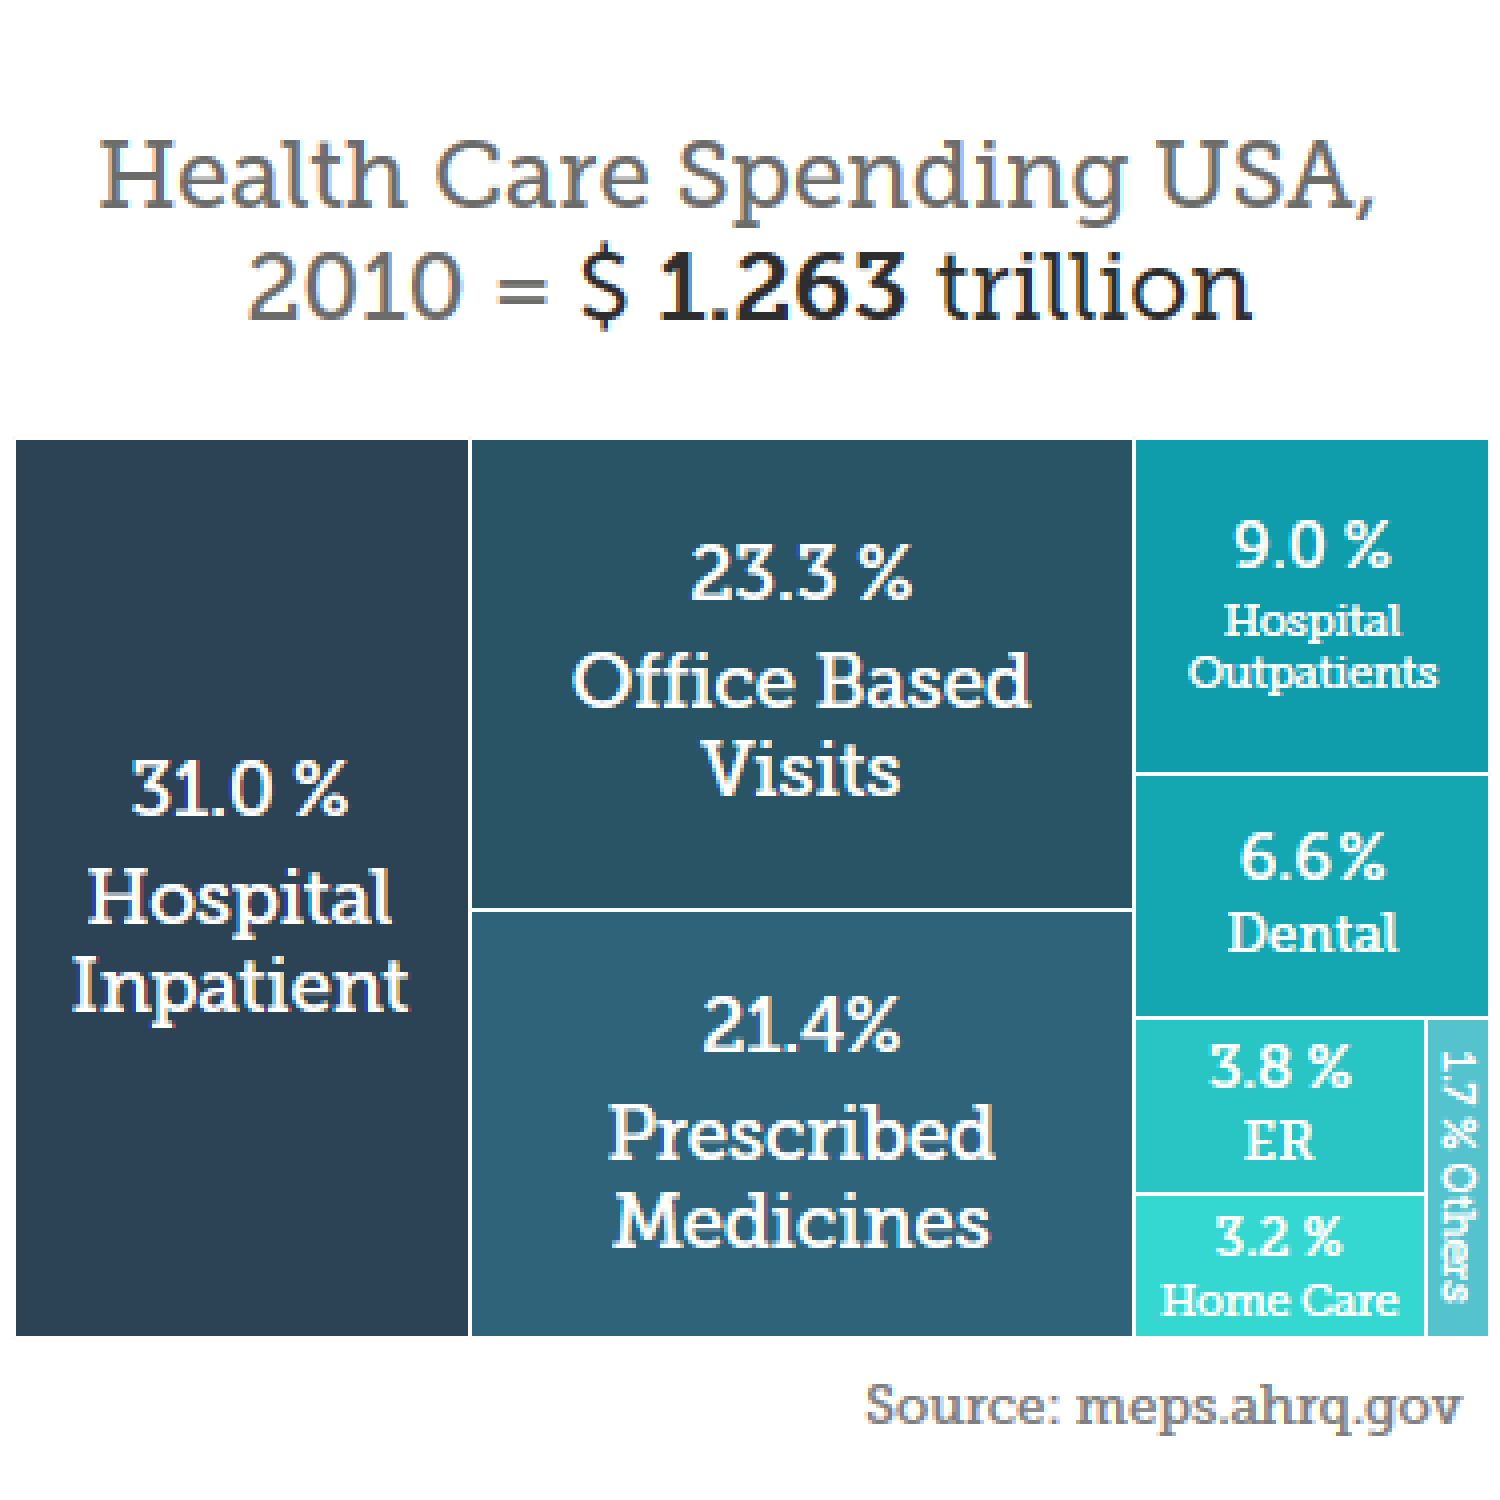 Healthcare Spending Infographic